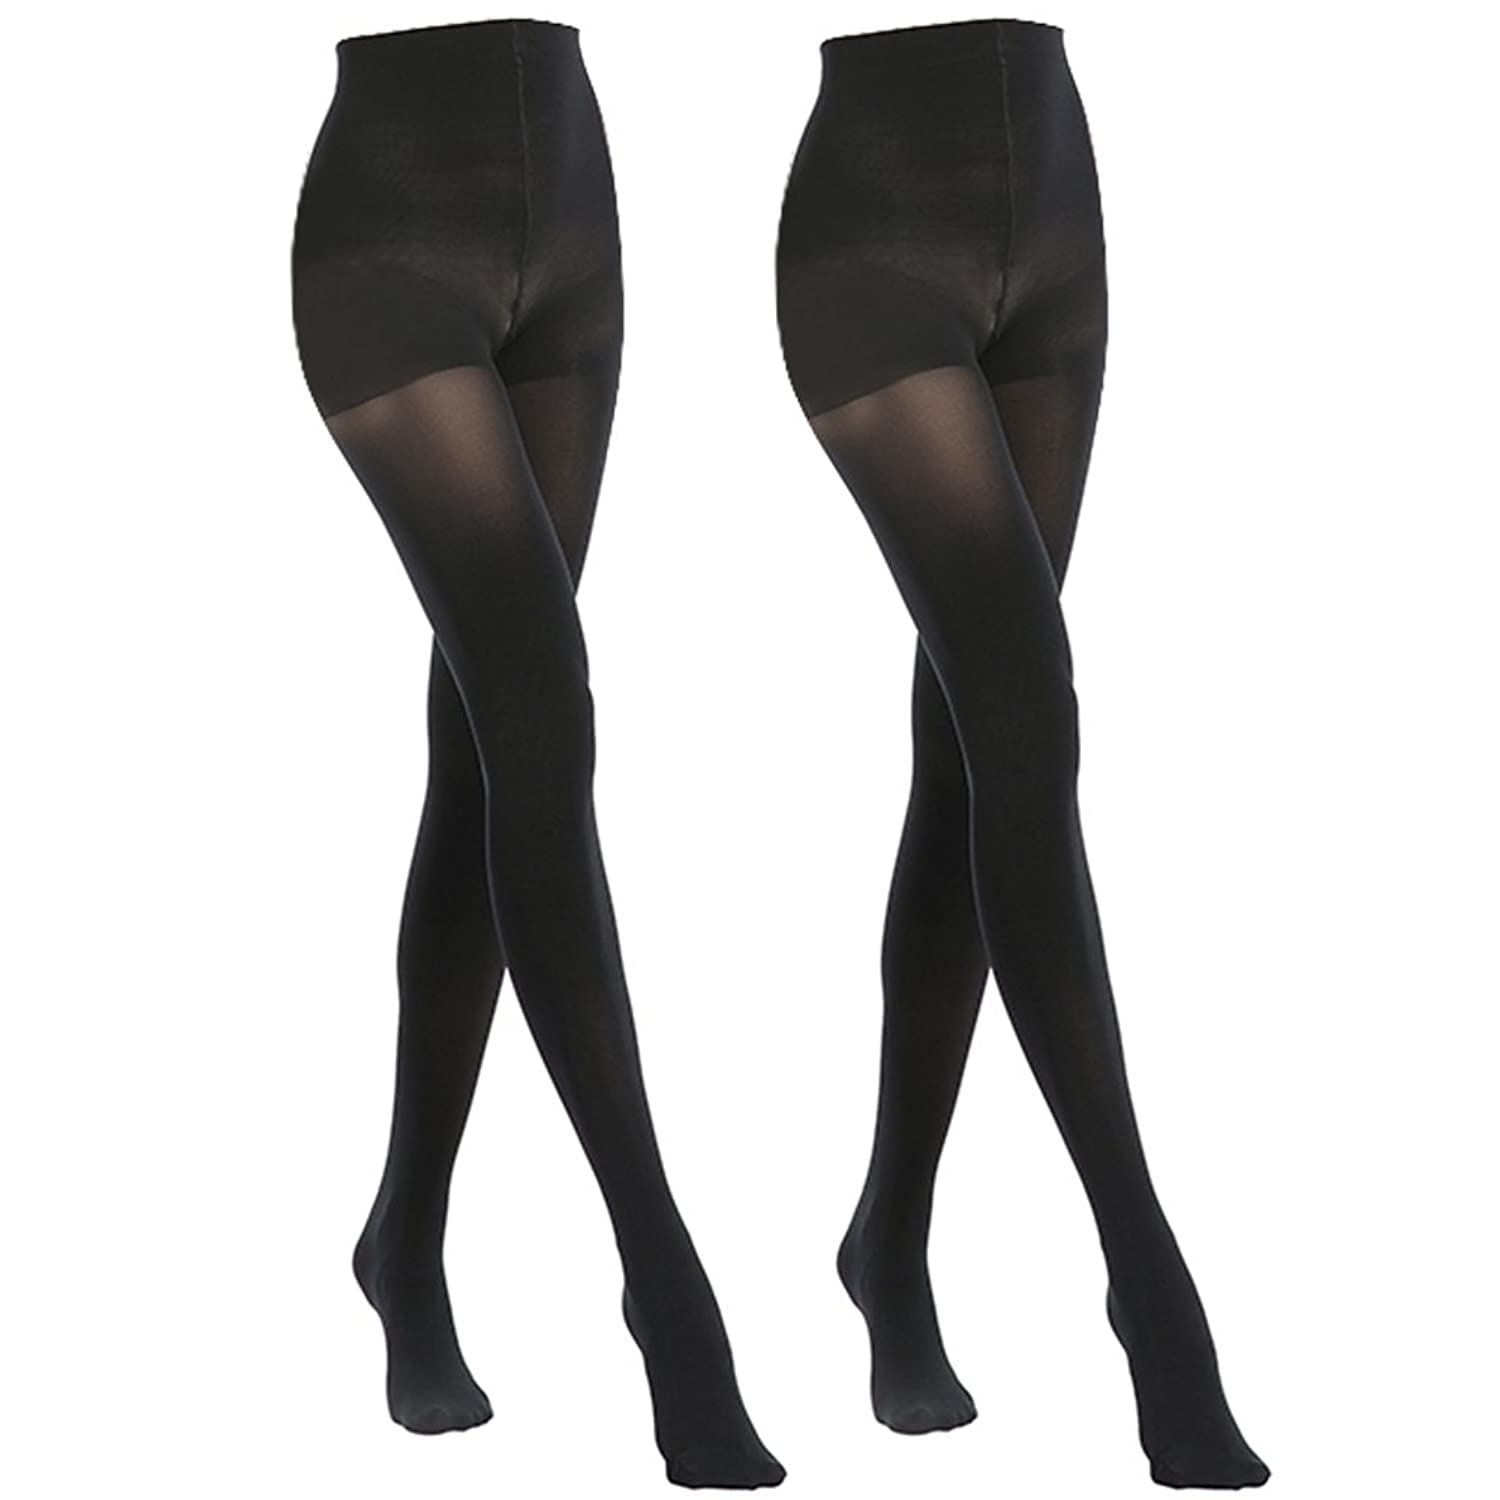 27648751c3e MANZI 2 Pairs 70 Denier Women s Tights Stretch Run Resistant Opaque Control  Top Tights